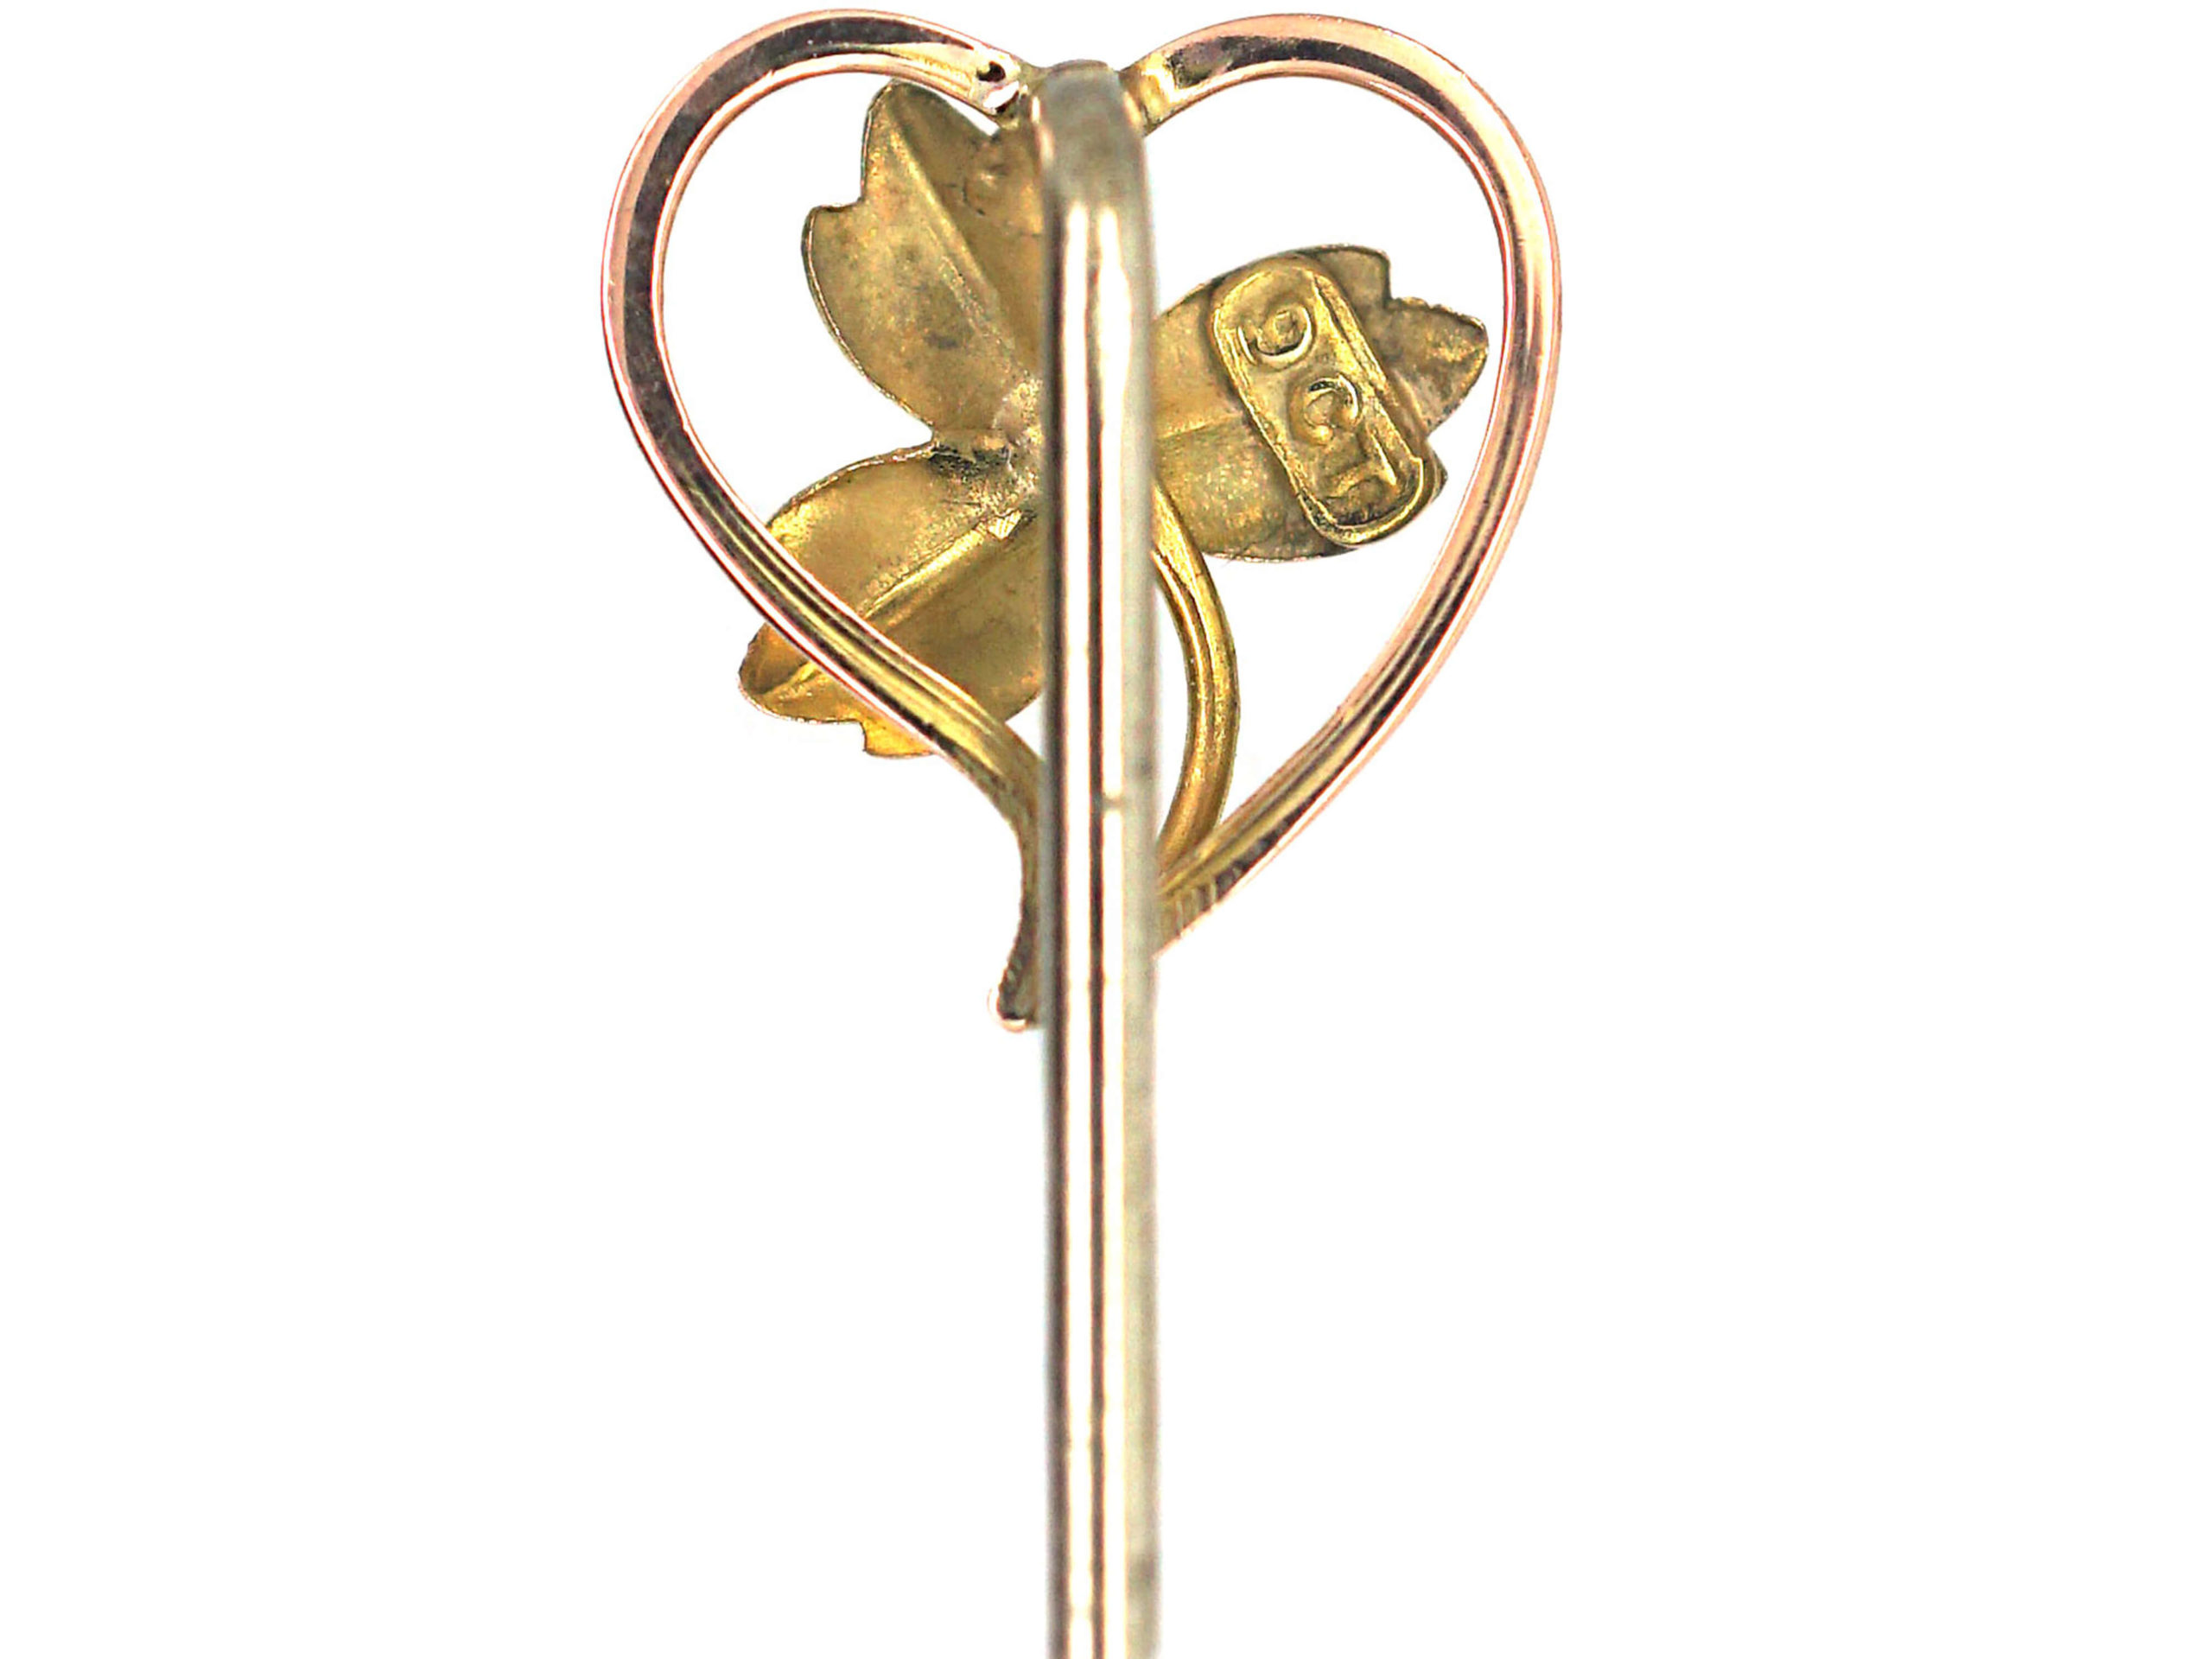 Edwardian 9ct Gold Three Leaf Clover within a Heart Tie Pin